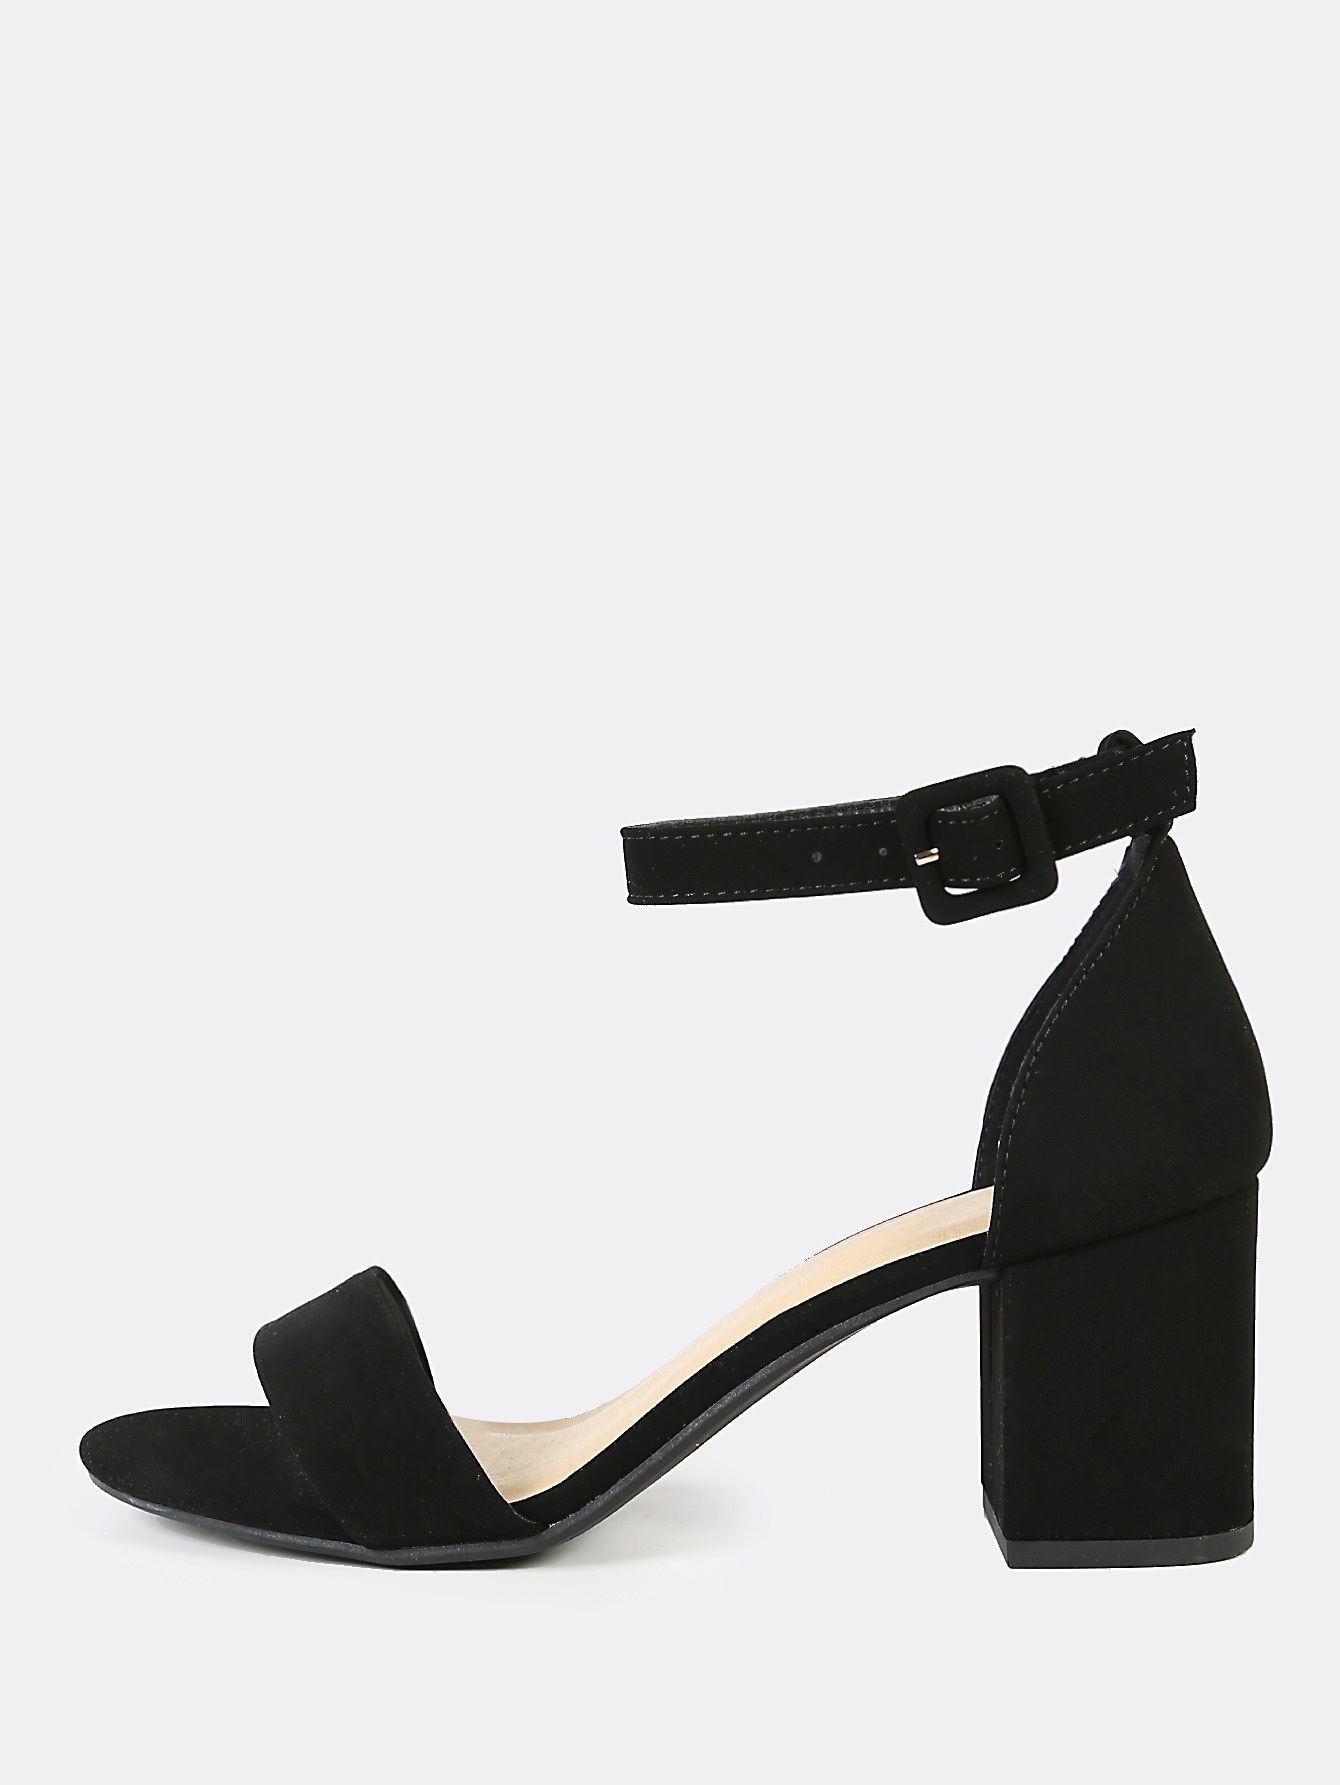 Women's Pumps & High Heels Online